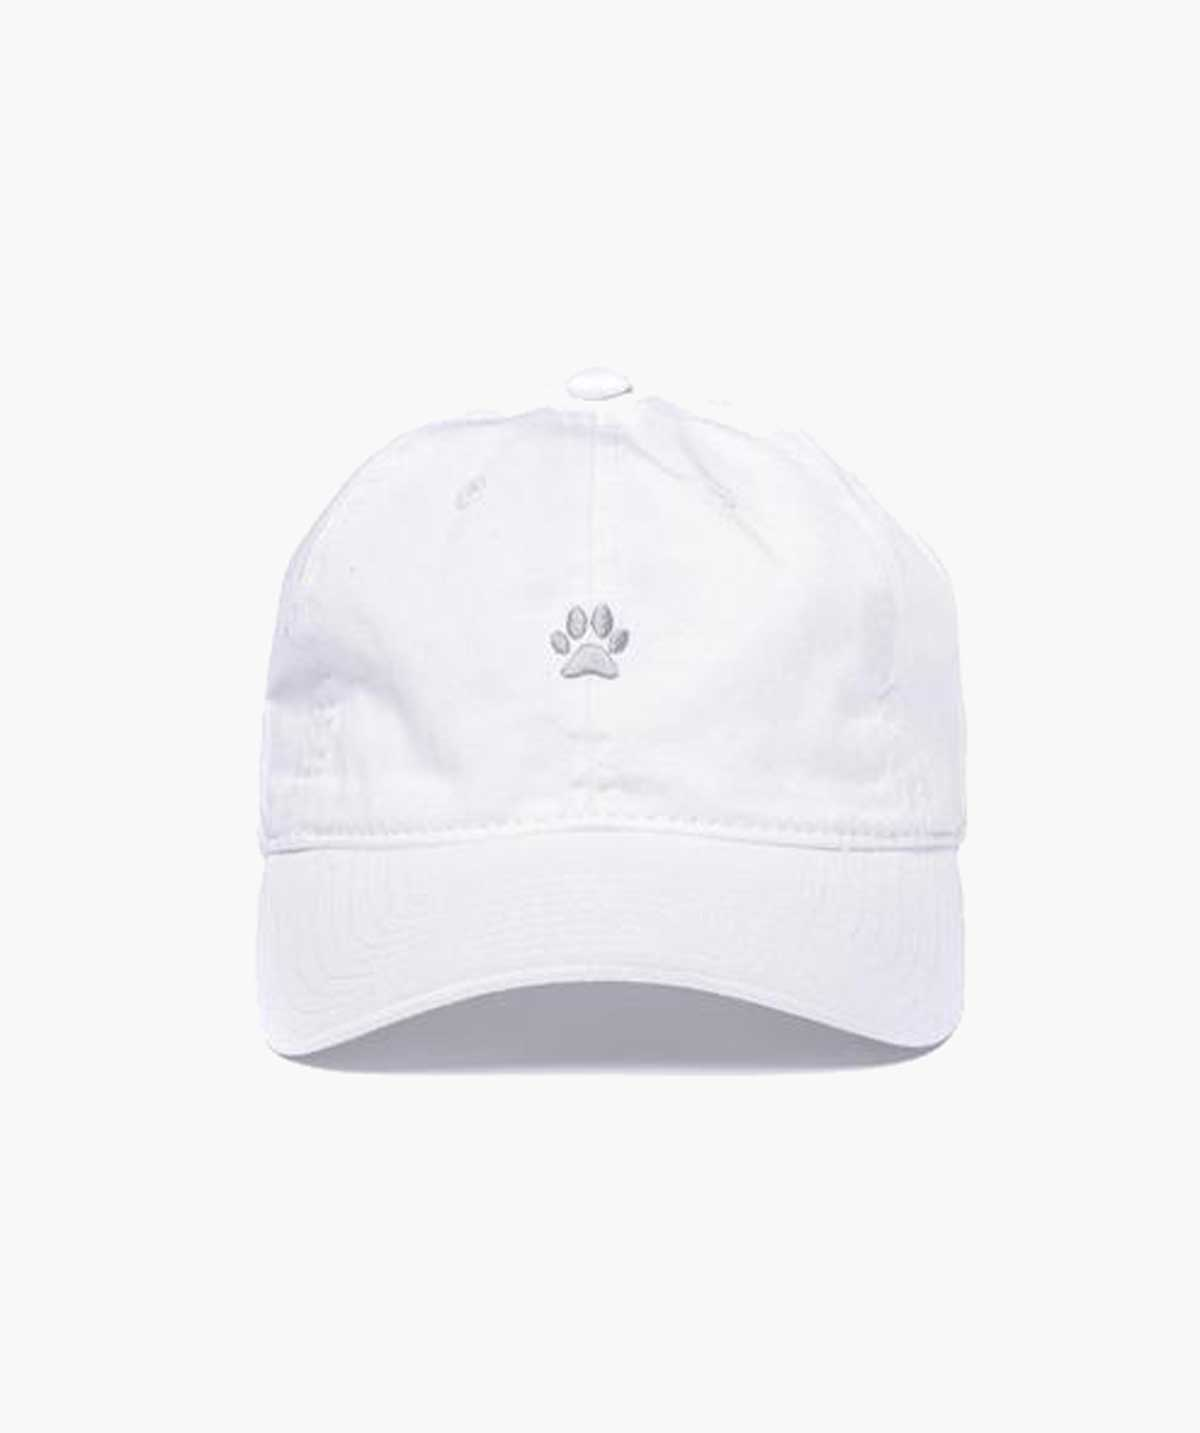 Dad Hat - White/Silver - MOD